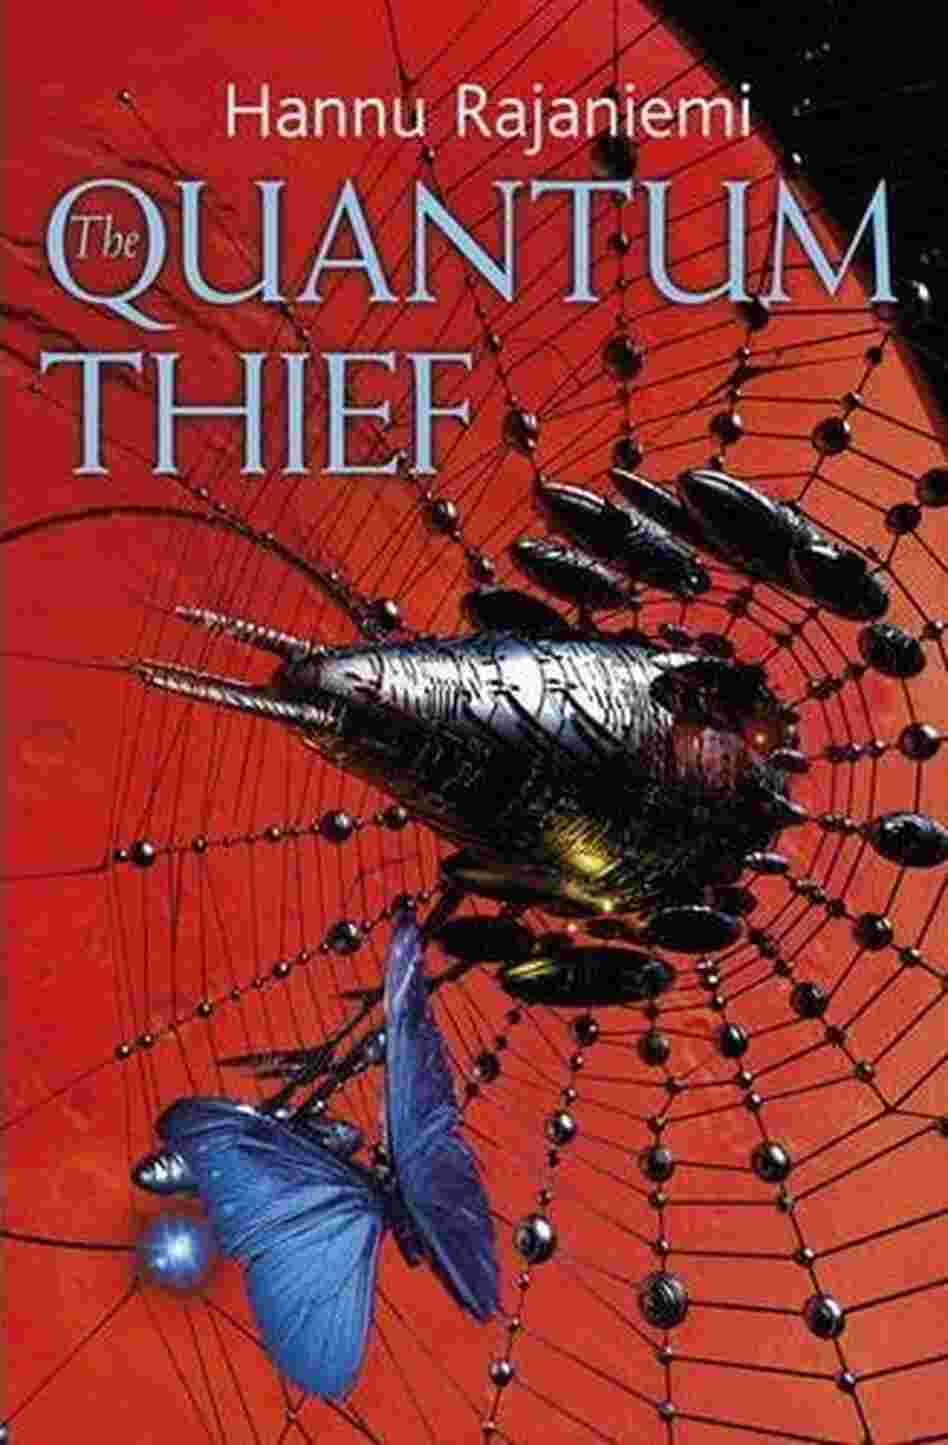 The Quantum Thief by Hannu Rajaneimi